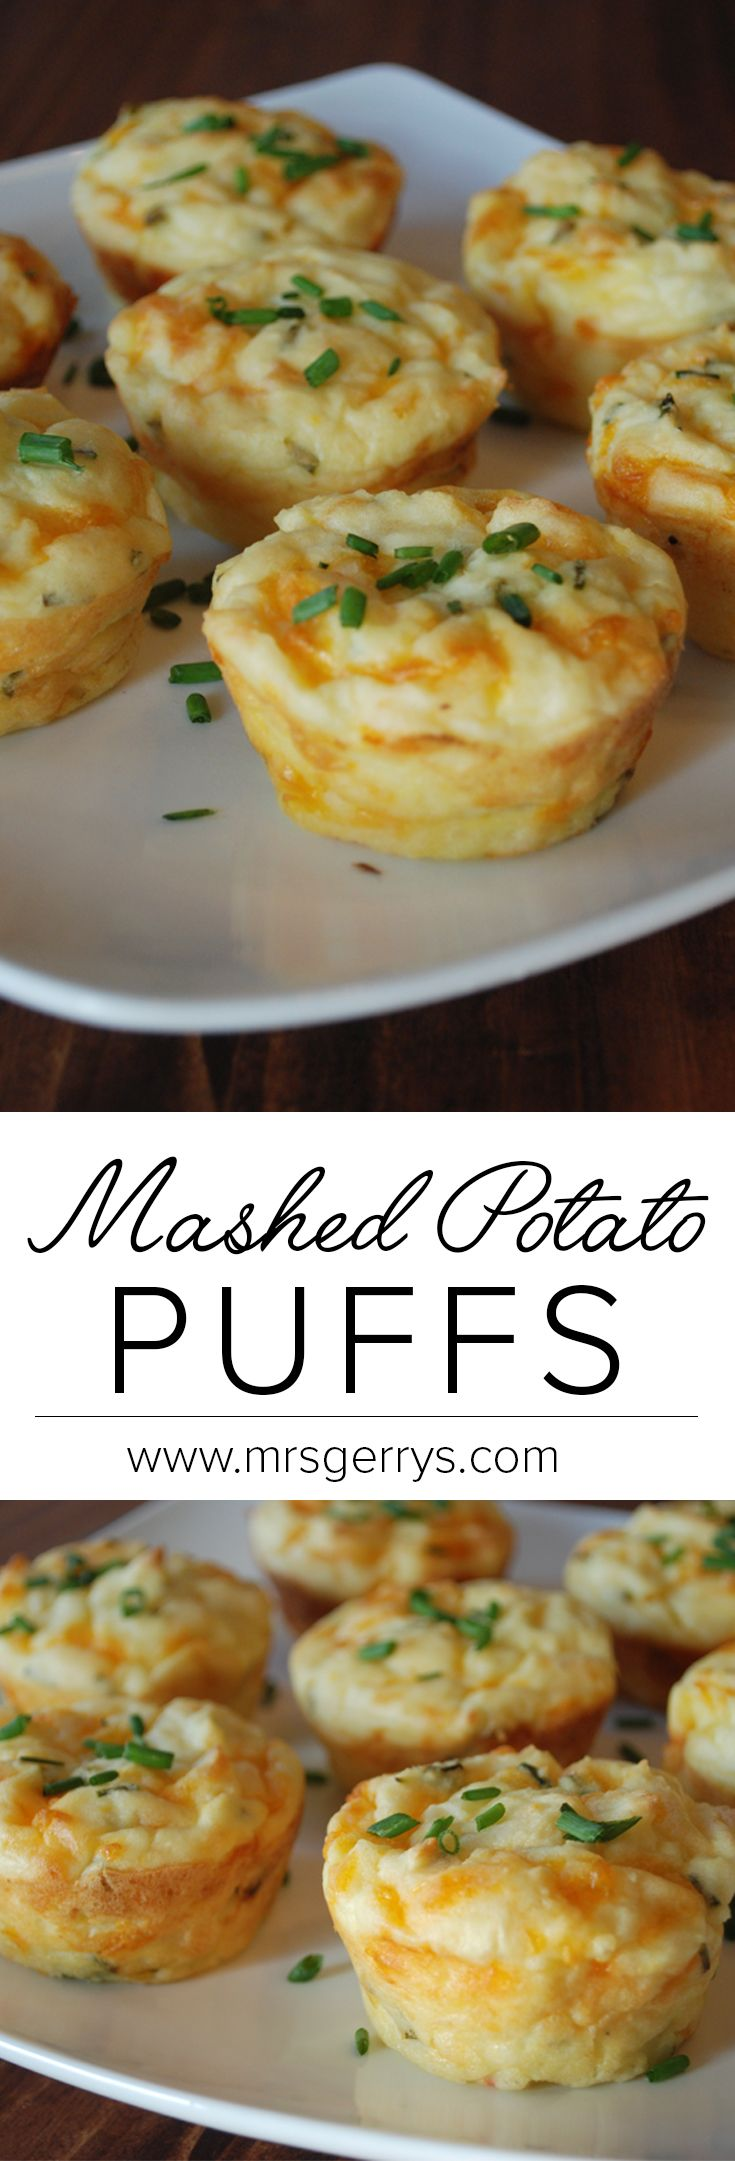 Everyone will love this quick and easy recipe for mashed potato puffs using Mrs. Gerry's Premium Mashed Potatoes.